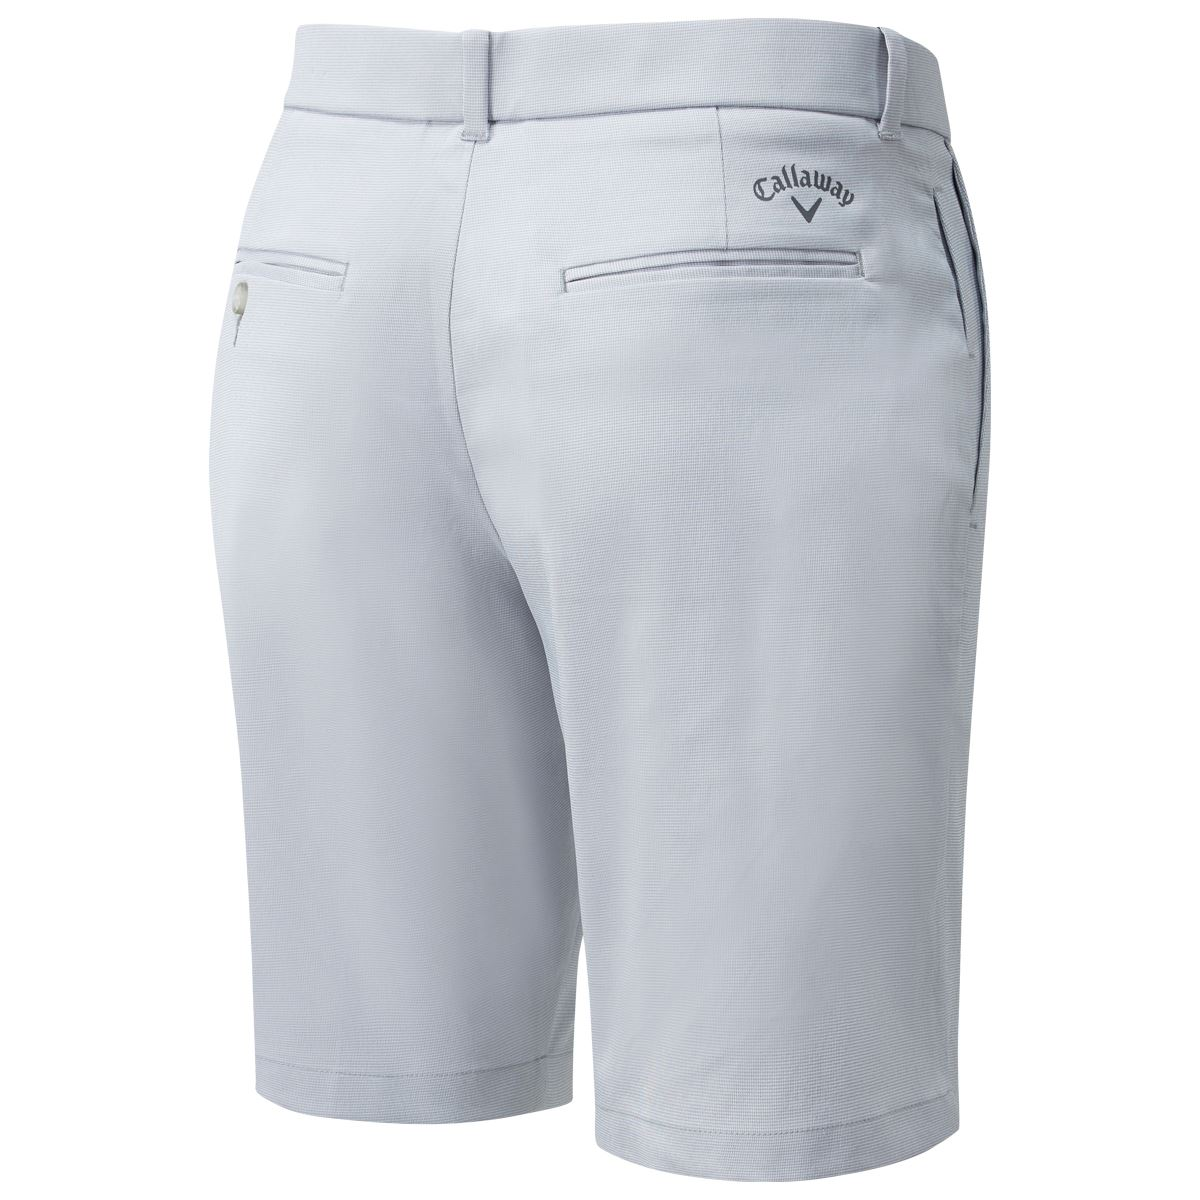 Callaway-Golf-2019-Ever-Cool-Oxford-Stretch-Opti-Dri-Tour-Mens-Golf-Shorts thumbnail 3